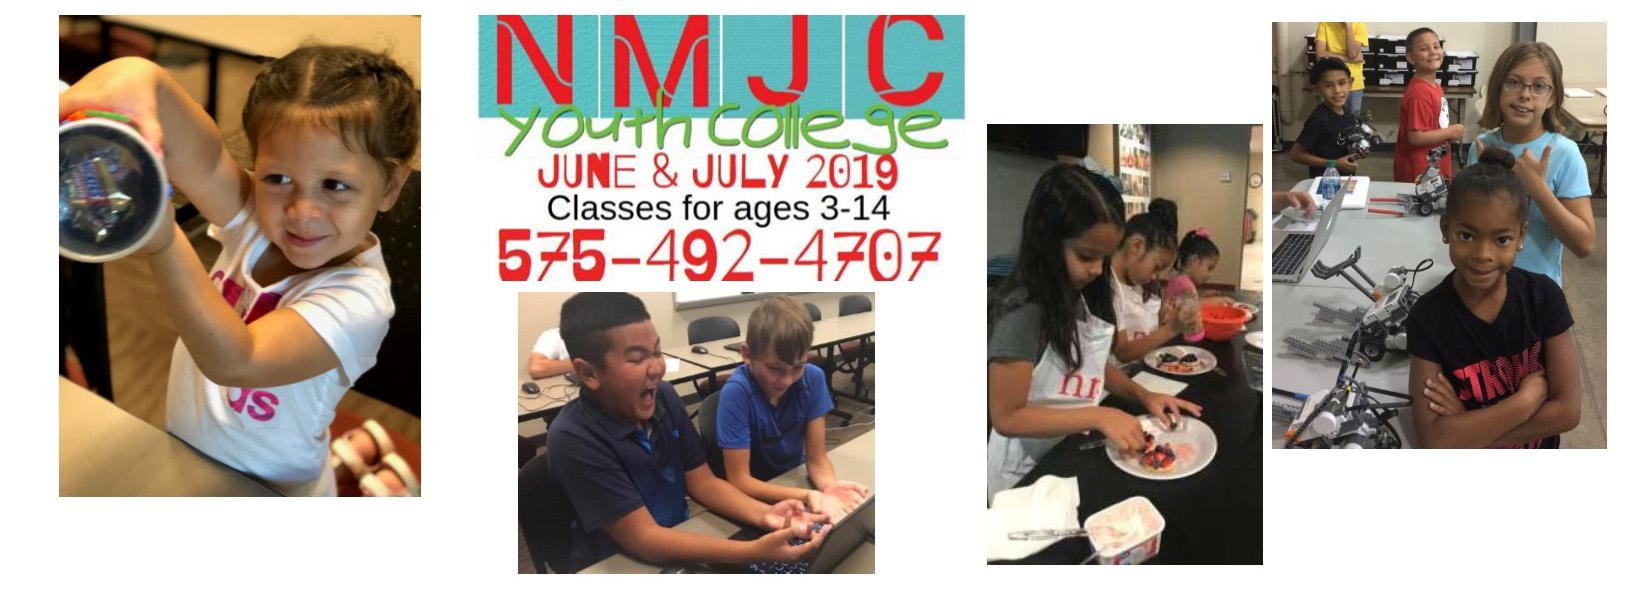 NMJC Youth College